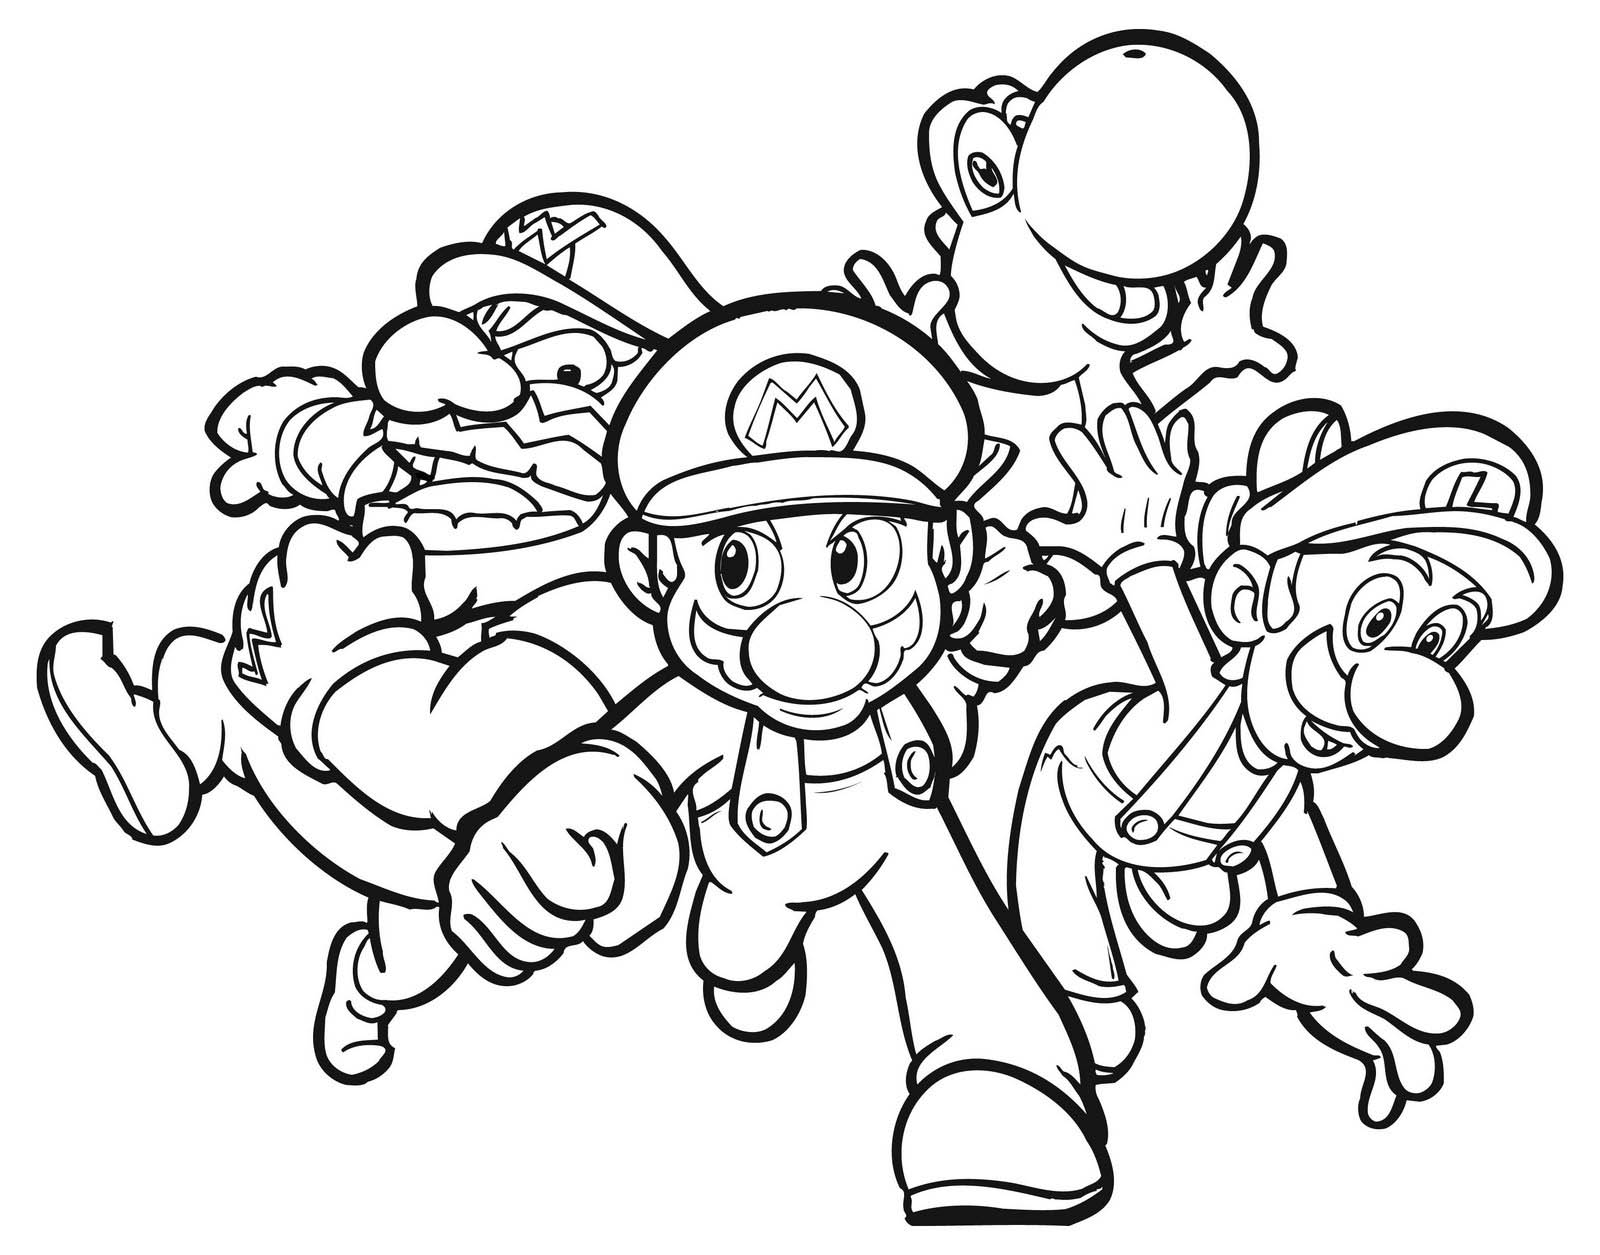 Free Mario Bros Coloring Pages For Kids gtgt Disney